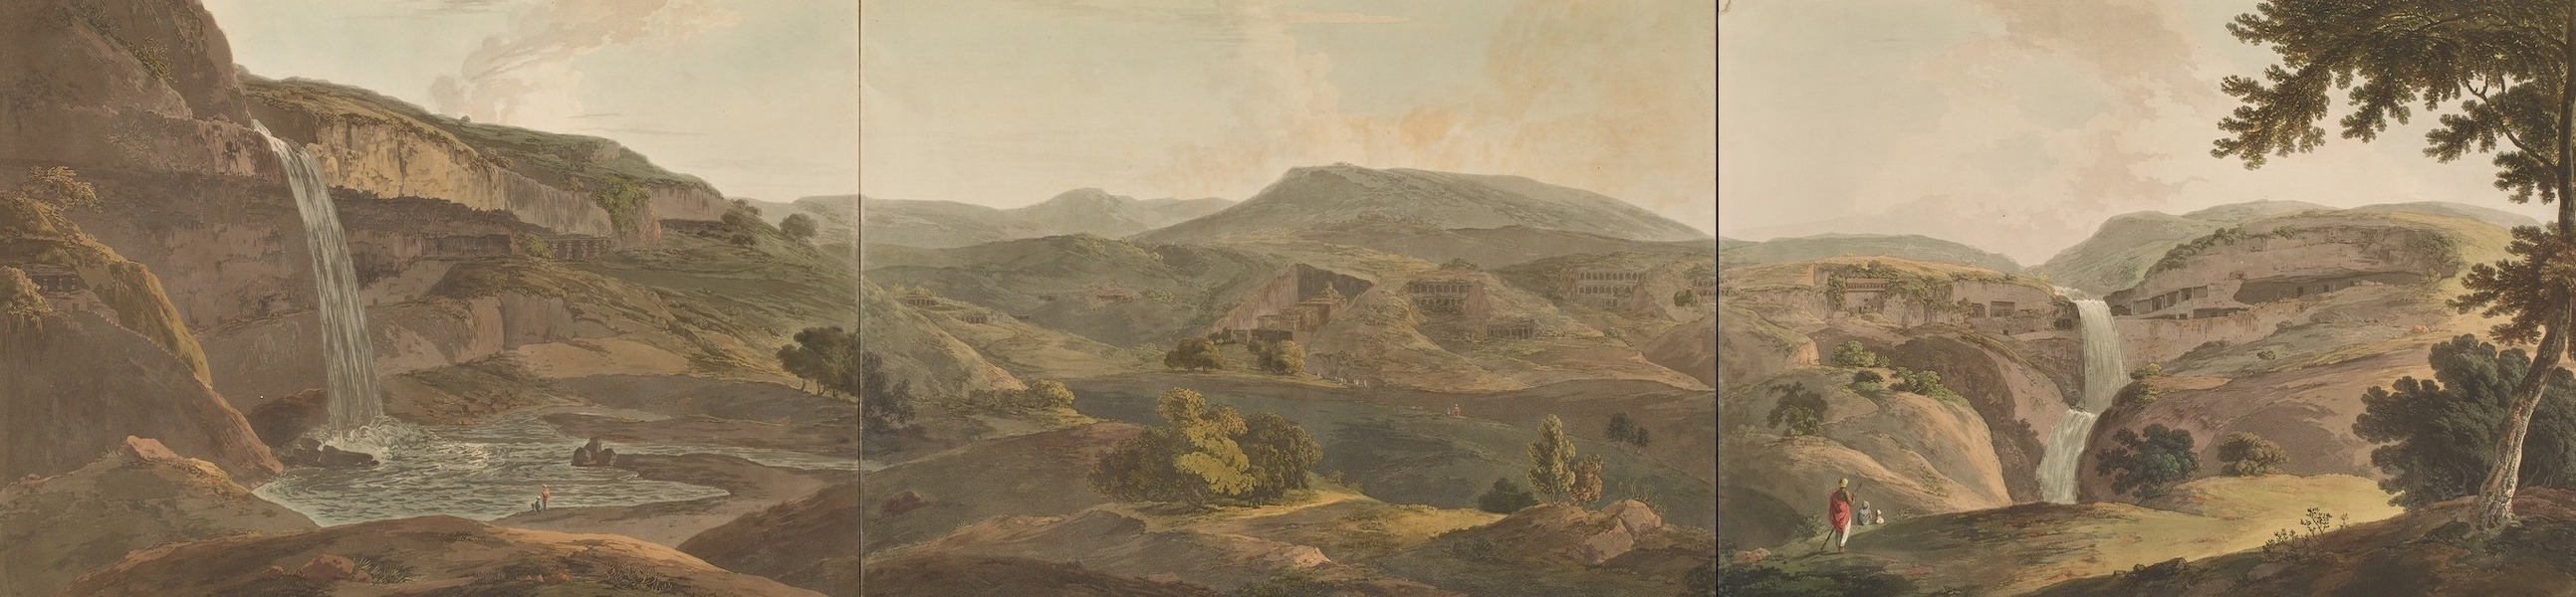 Hindoo Excavations in the Mountain of Ellora - The Mountain Of Ellora [Composite View] (1803)